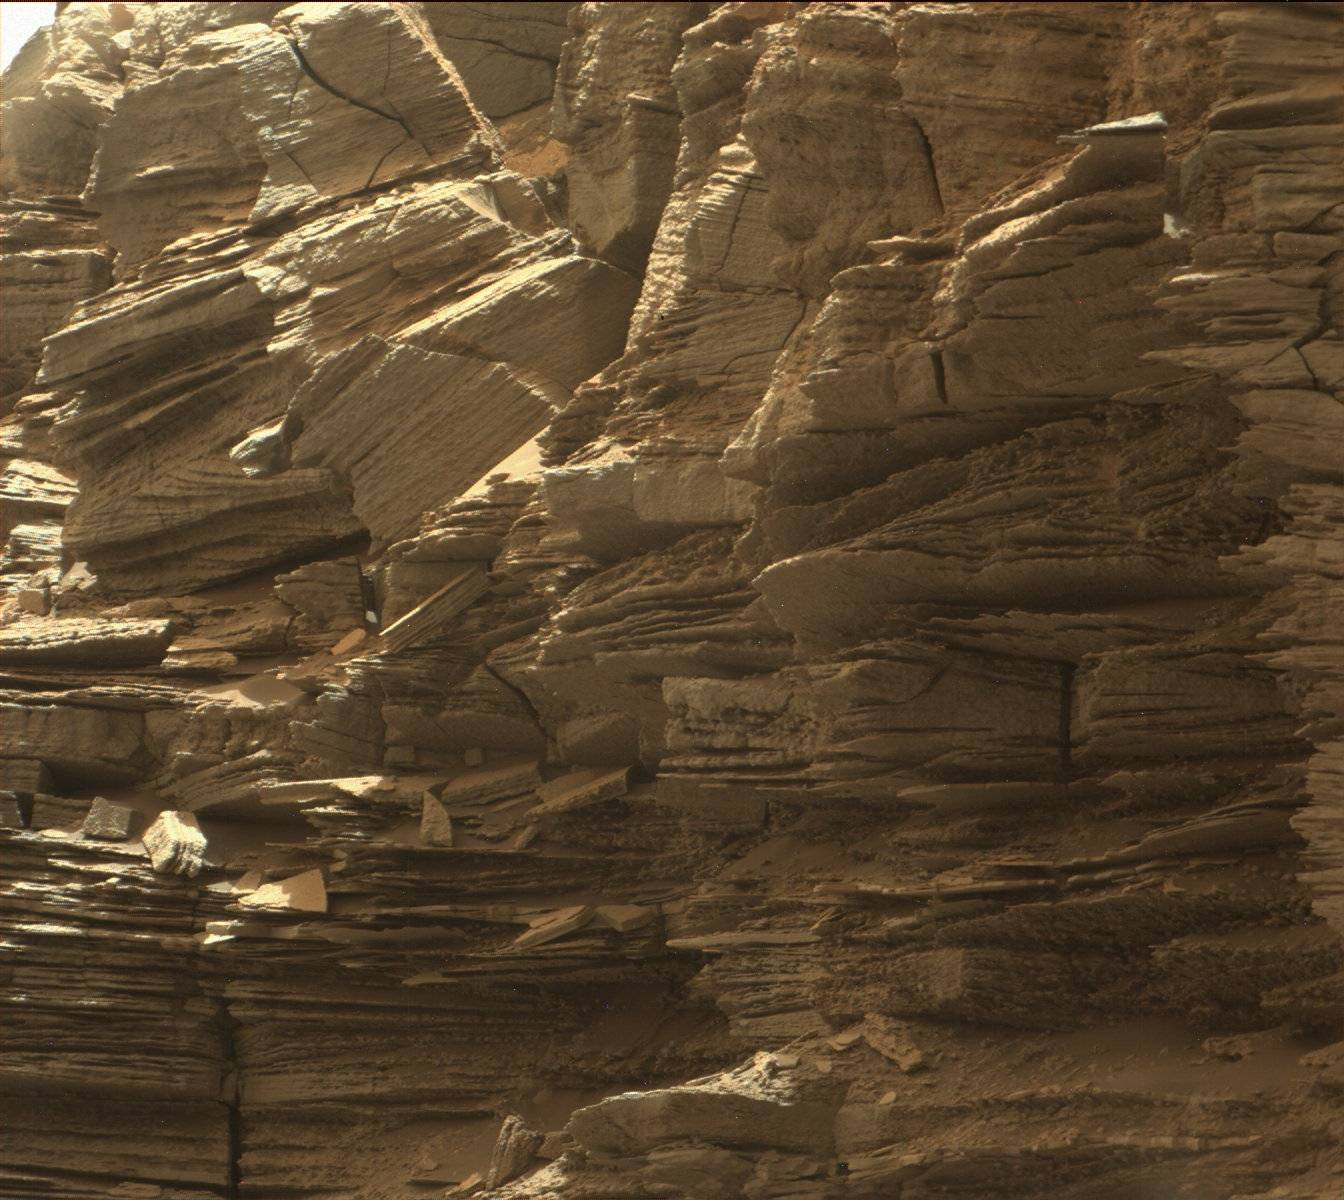 curiosity rover color - photo #20